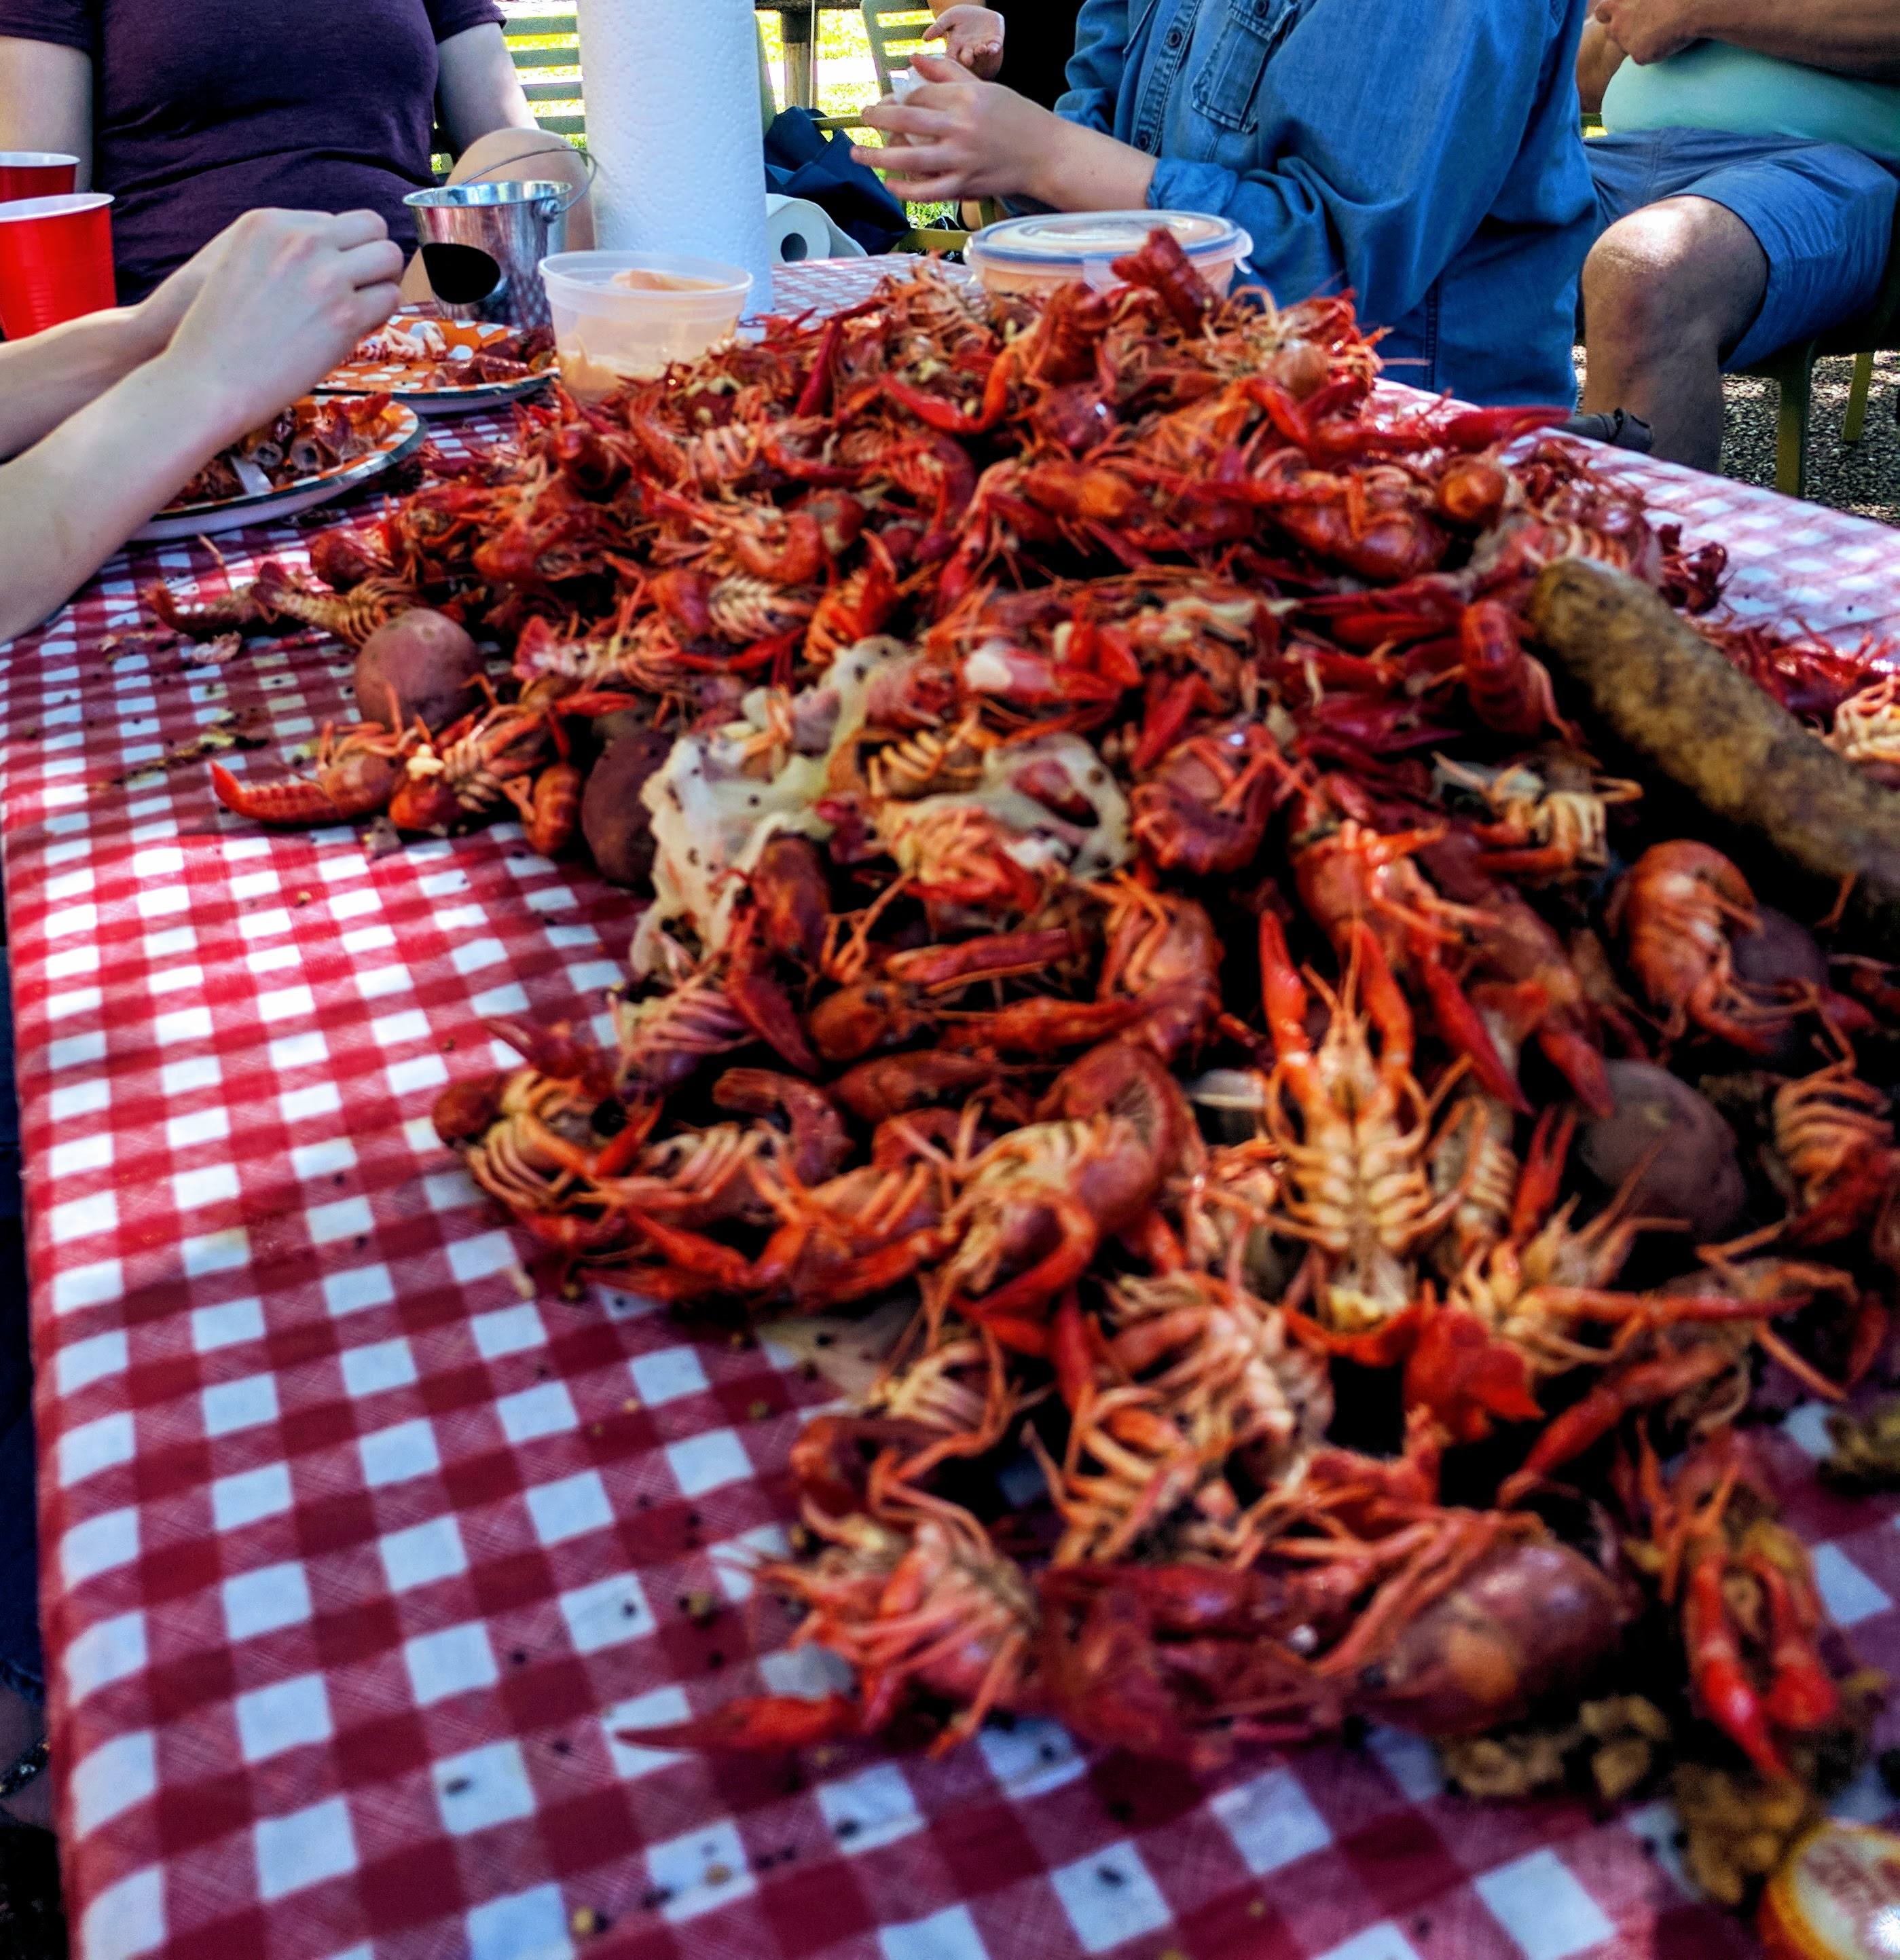 Picnic table of boiled crawfish